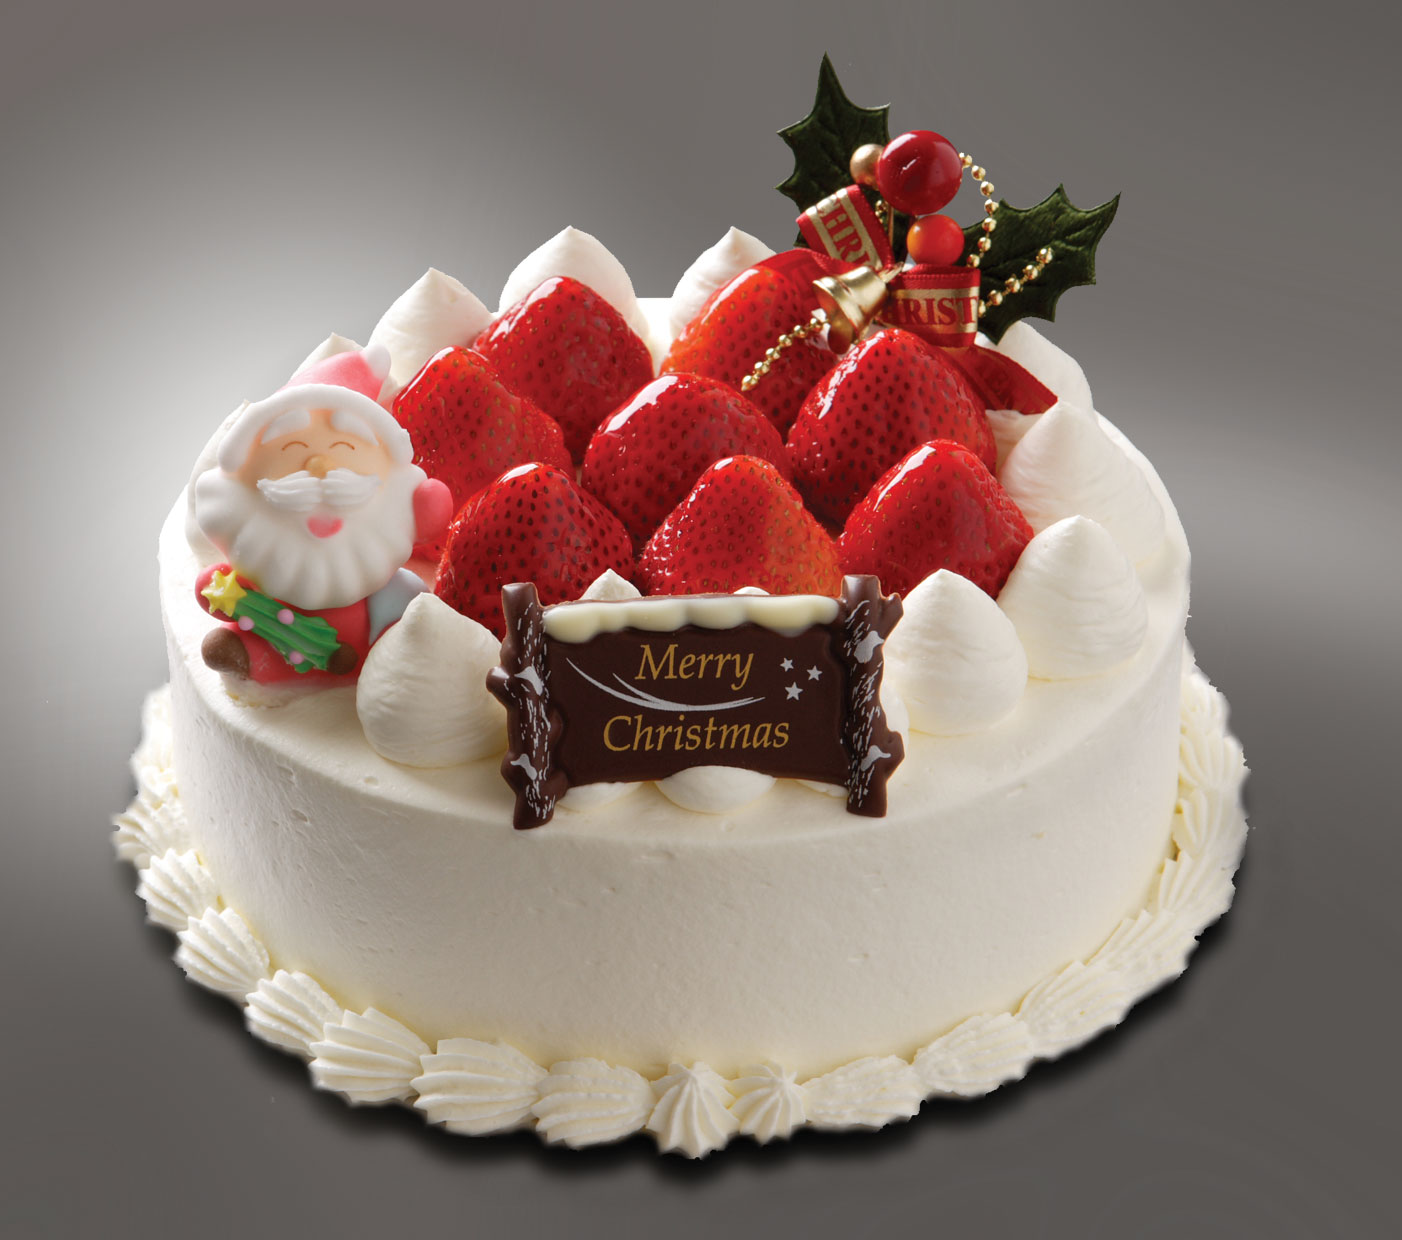 & 50 Christmas Cake Decorating Ideas